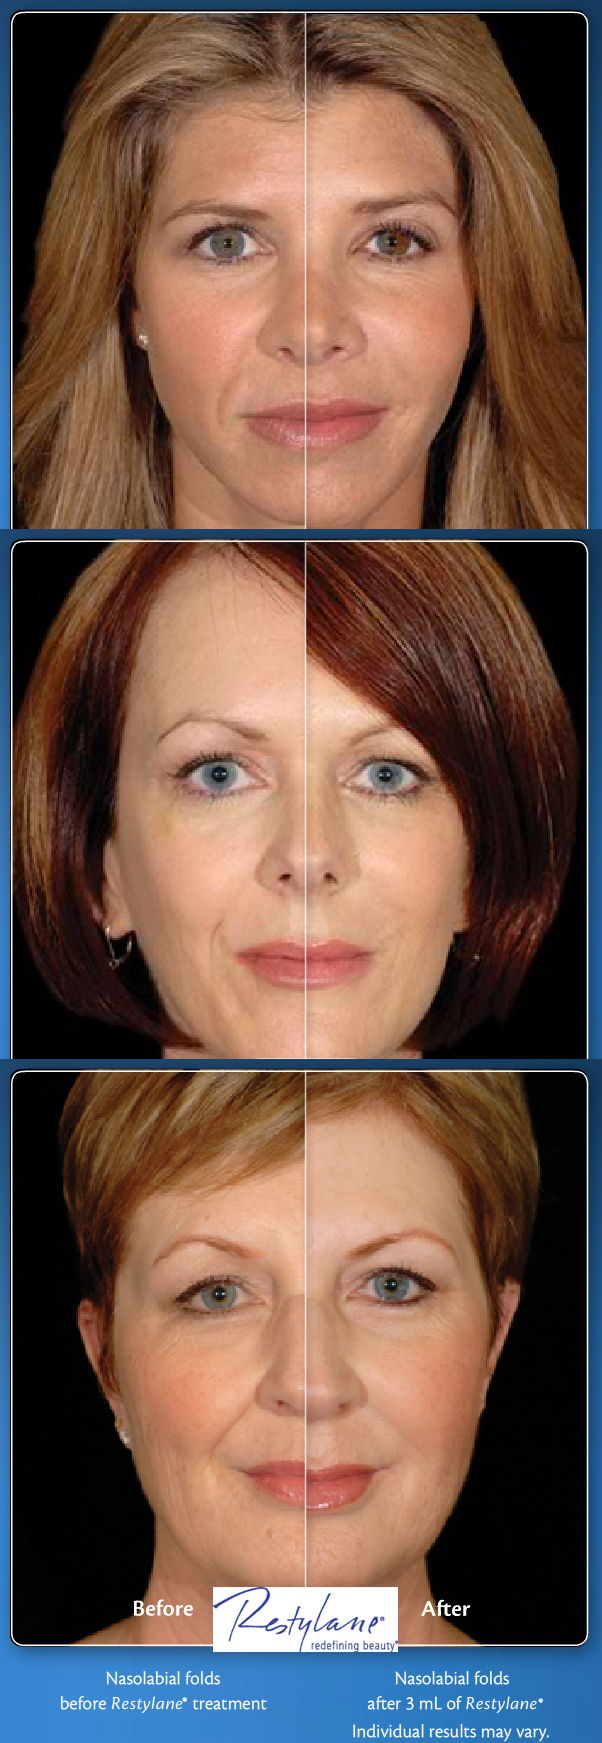 Nasolabial Folds treatment with Restylane - Before and After photos